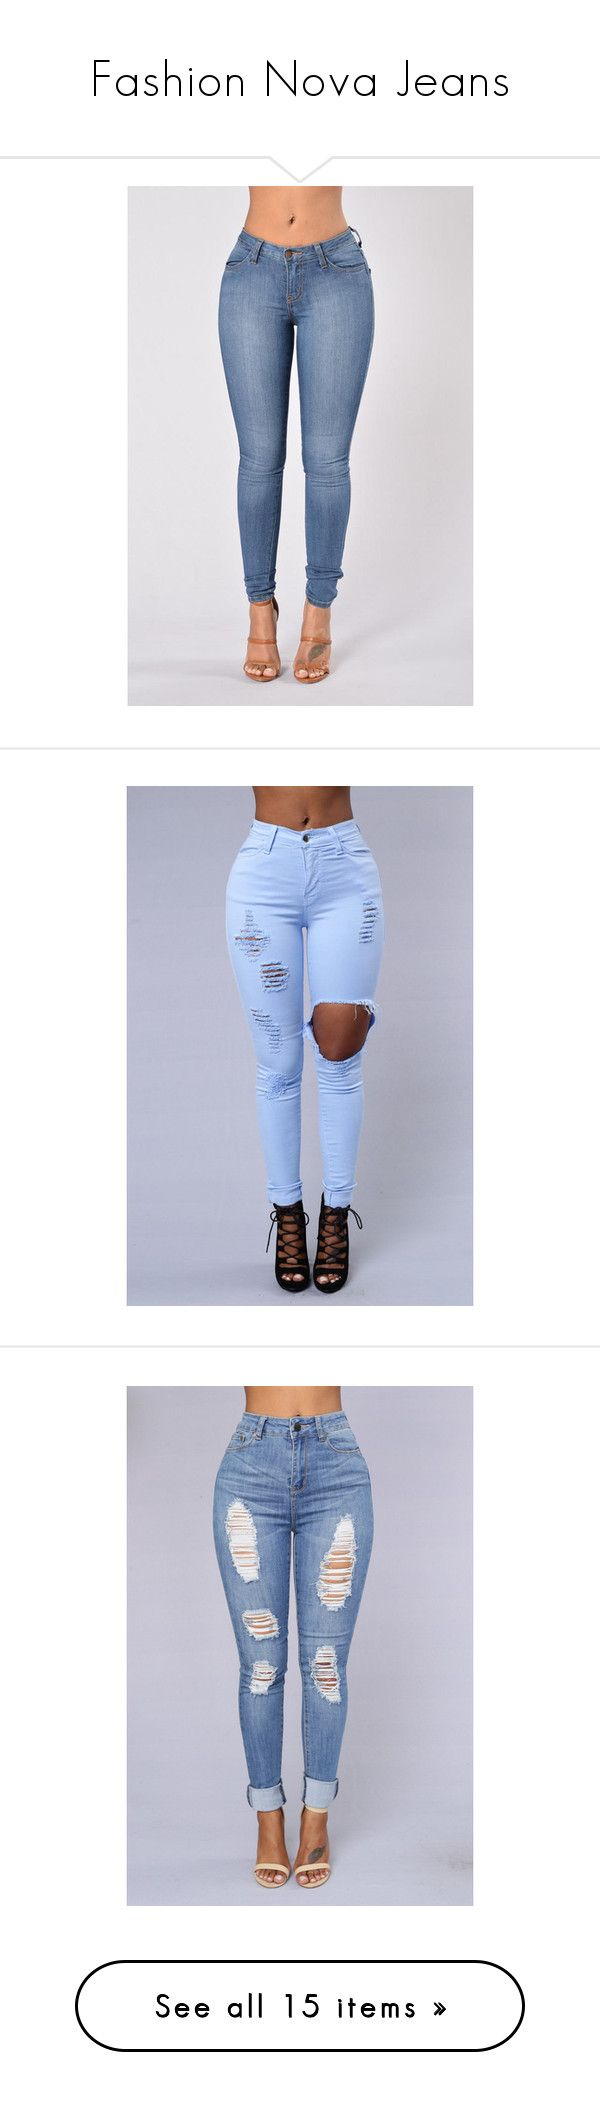 """""""Fashion Nova Jeans"""" by heyhellocee ❤ liked on Polyvore featuring jeans, skinny jeans, skinny leg jeans, mid rise skinny jeans, blue skinny jeans, blue jeans, bottoms, pants, light blue jeans and high rise skinny jeans"""